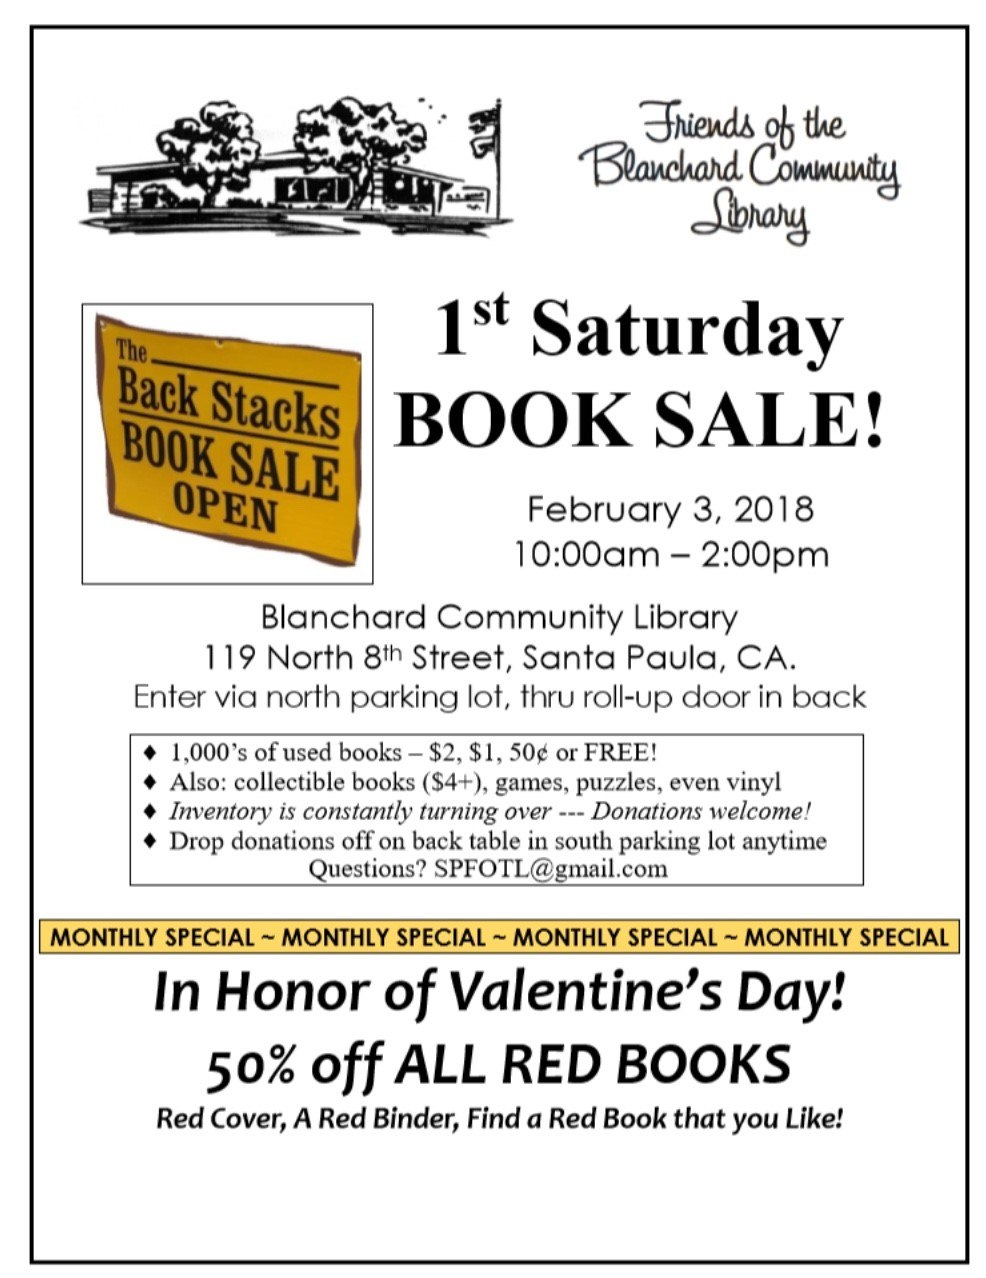 1st Sat Book Sale Feb 3, 2018.jpg